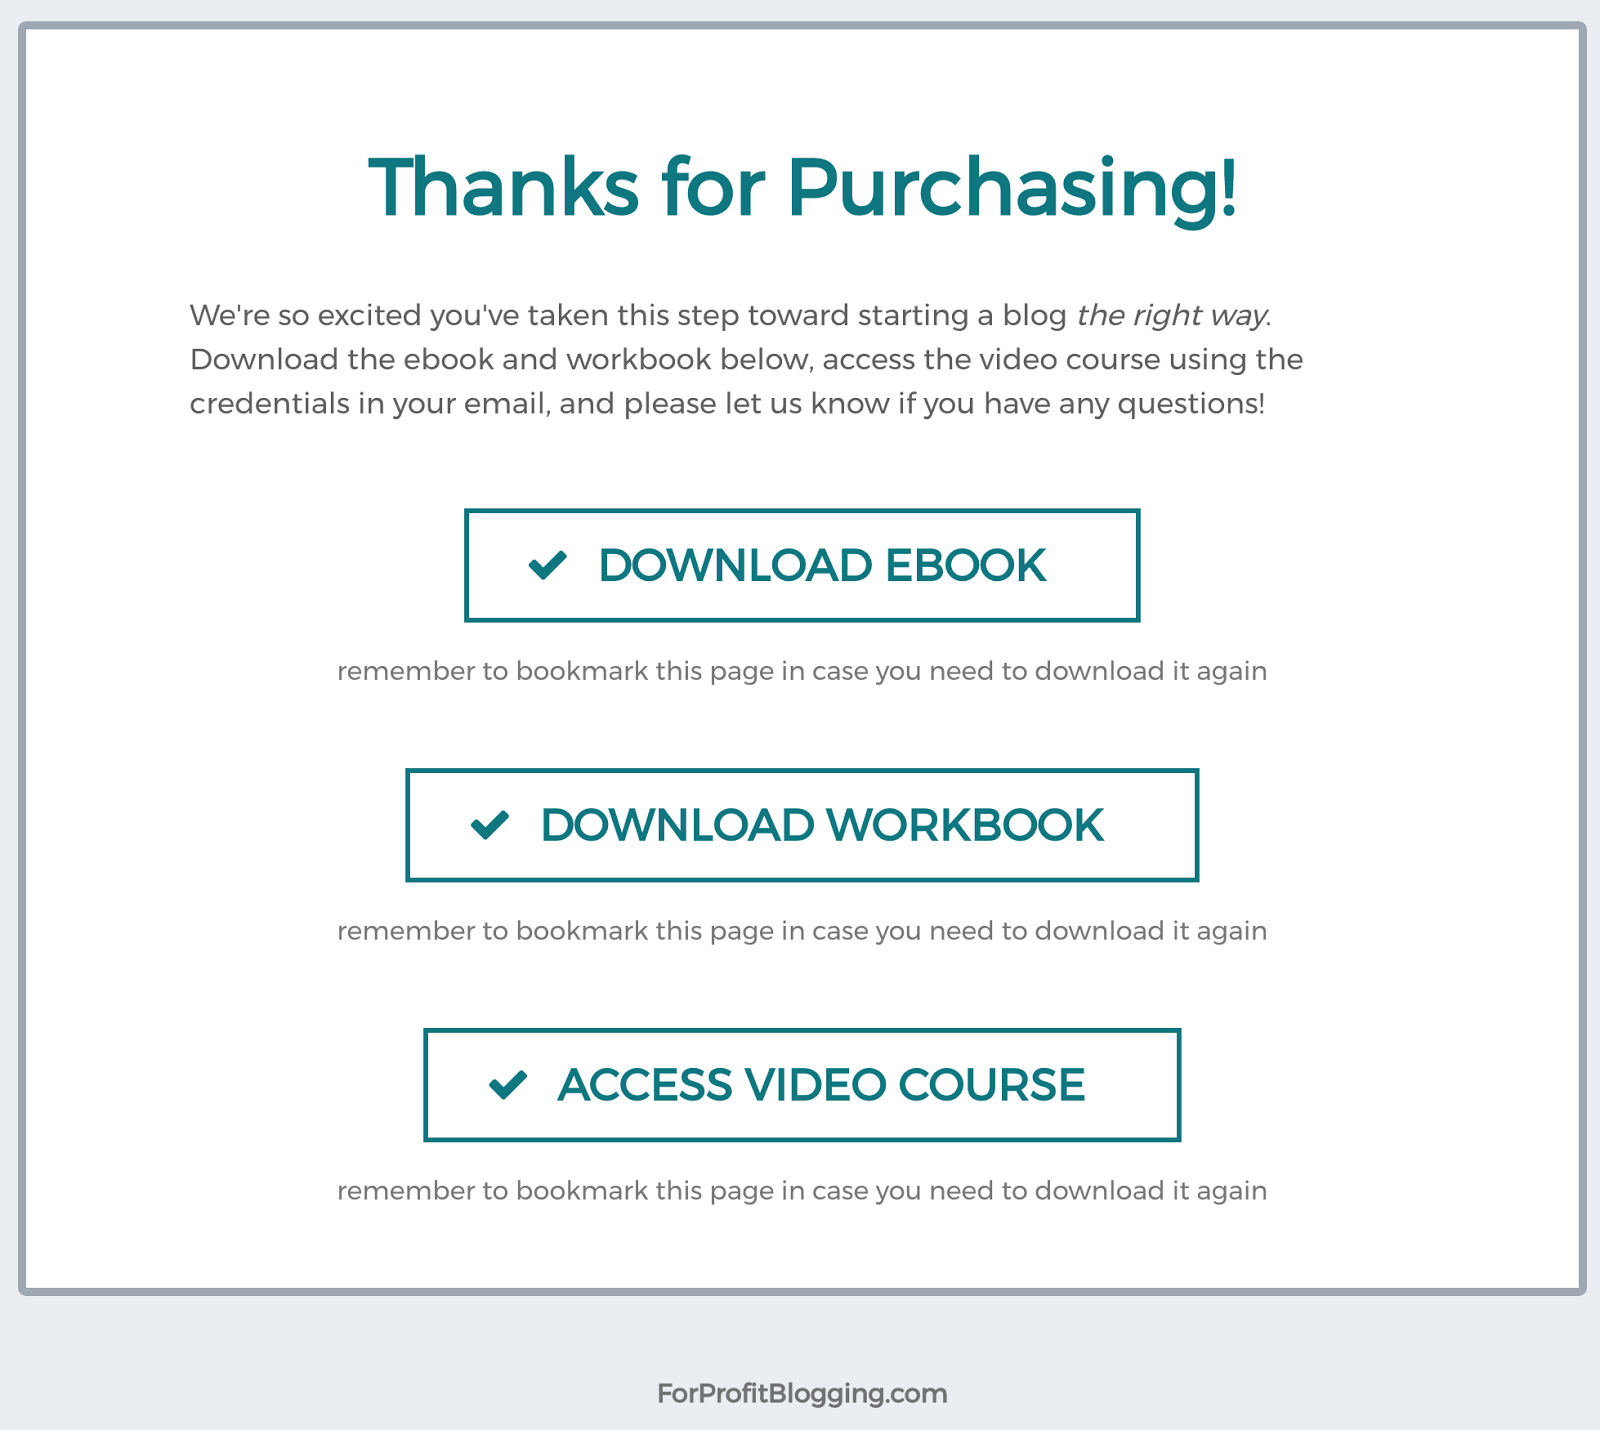 ebook workbook video course